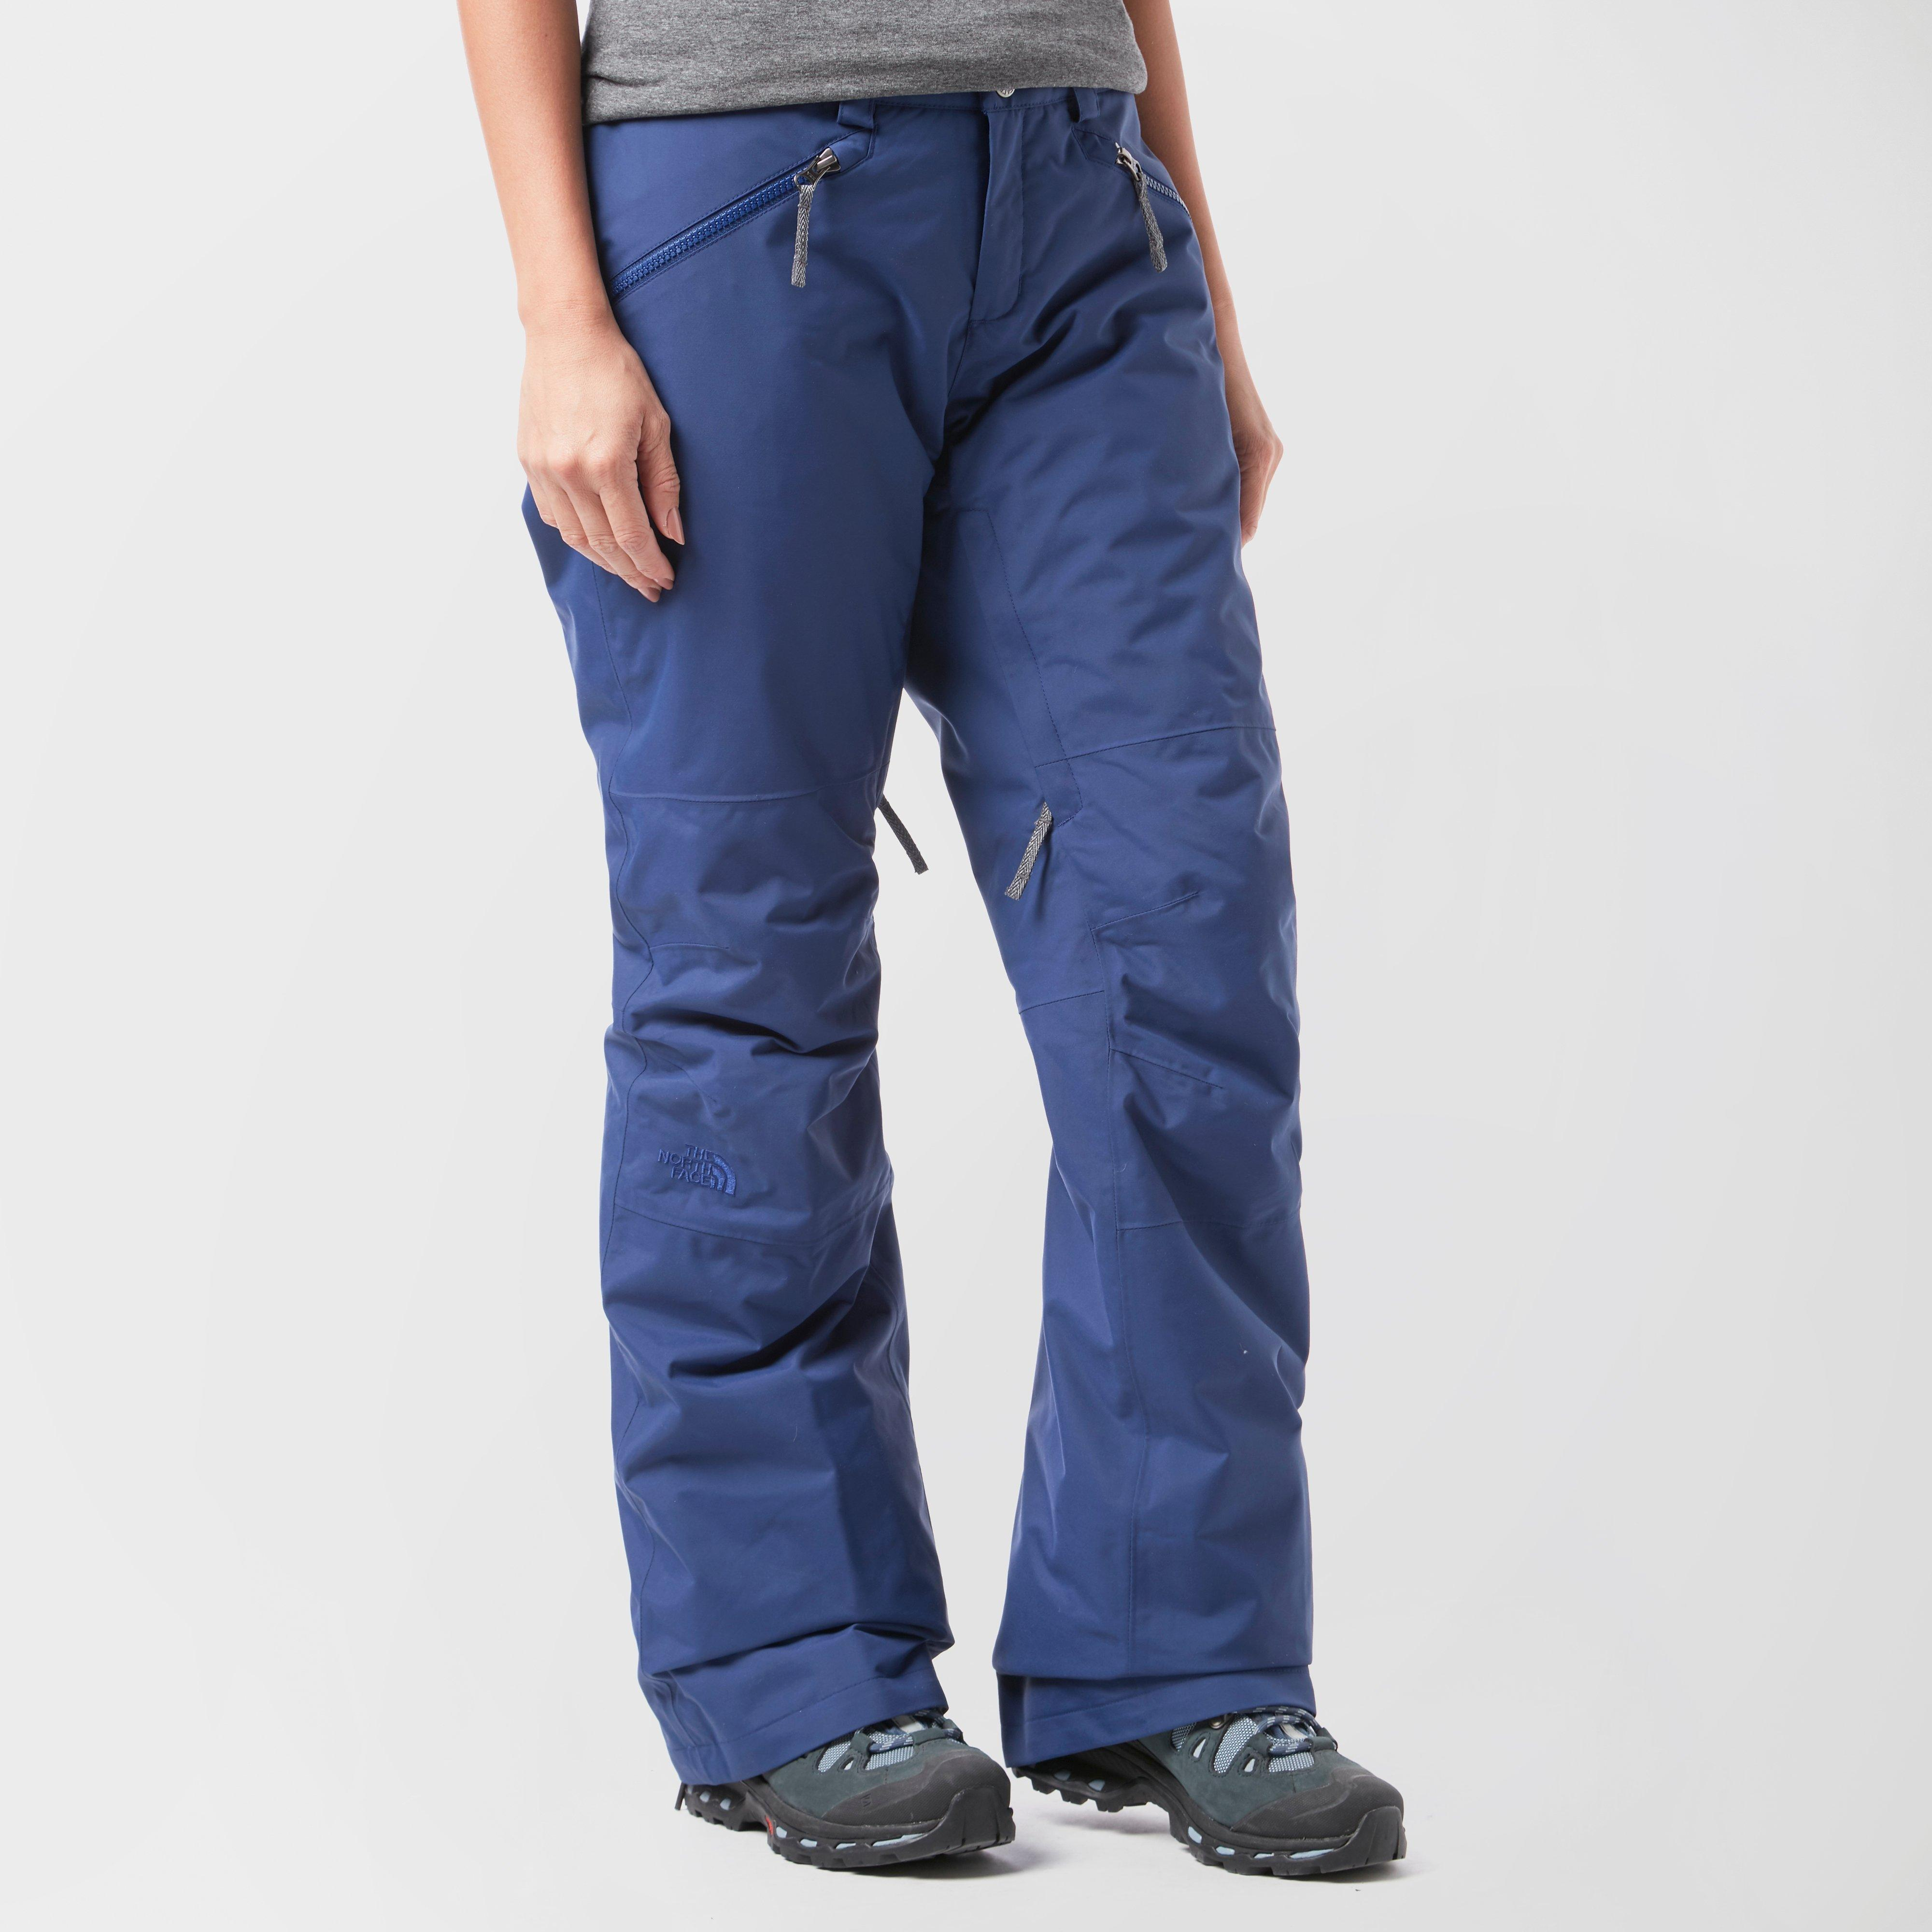 The North Face The North Face womens AboutADay Ski Pants - Blue, Blue